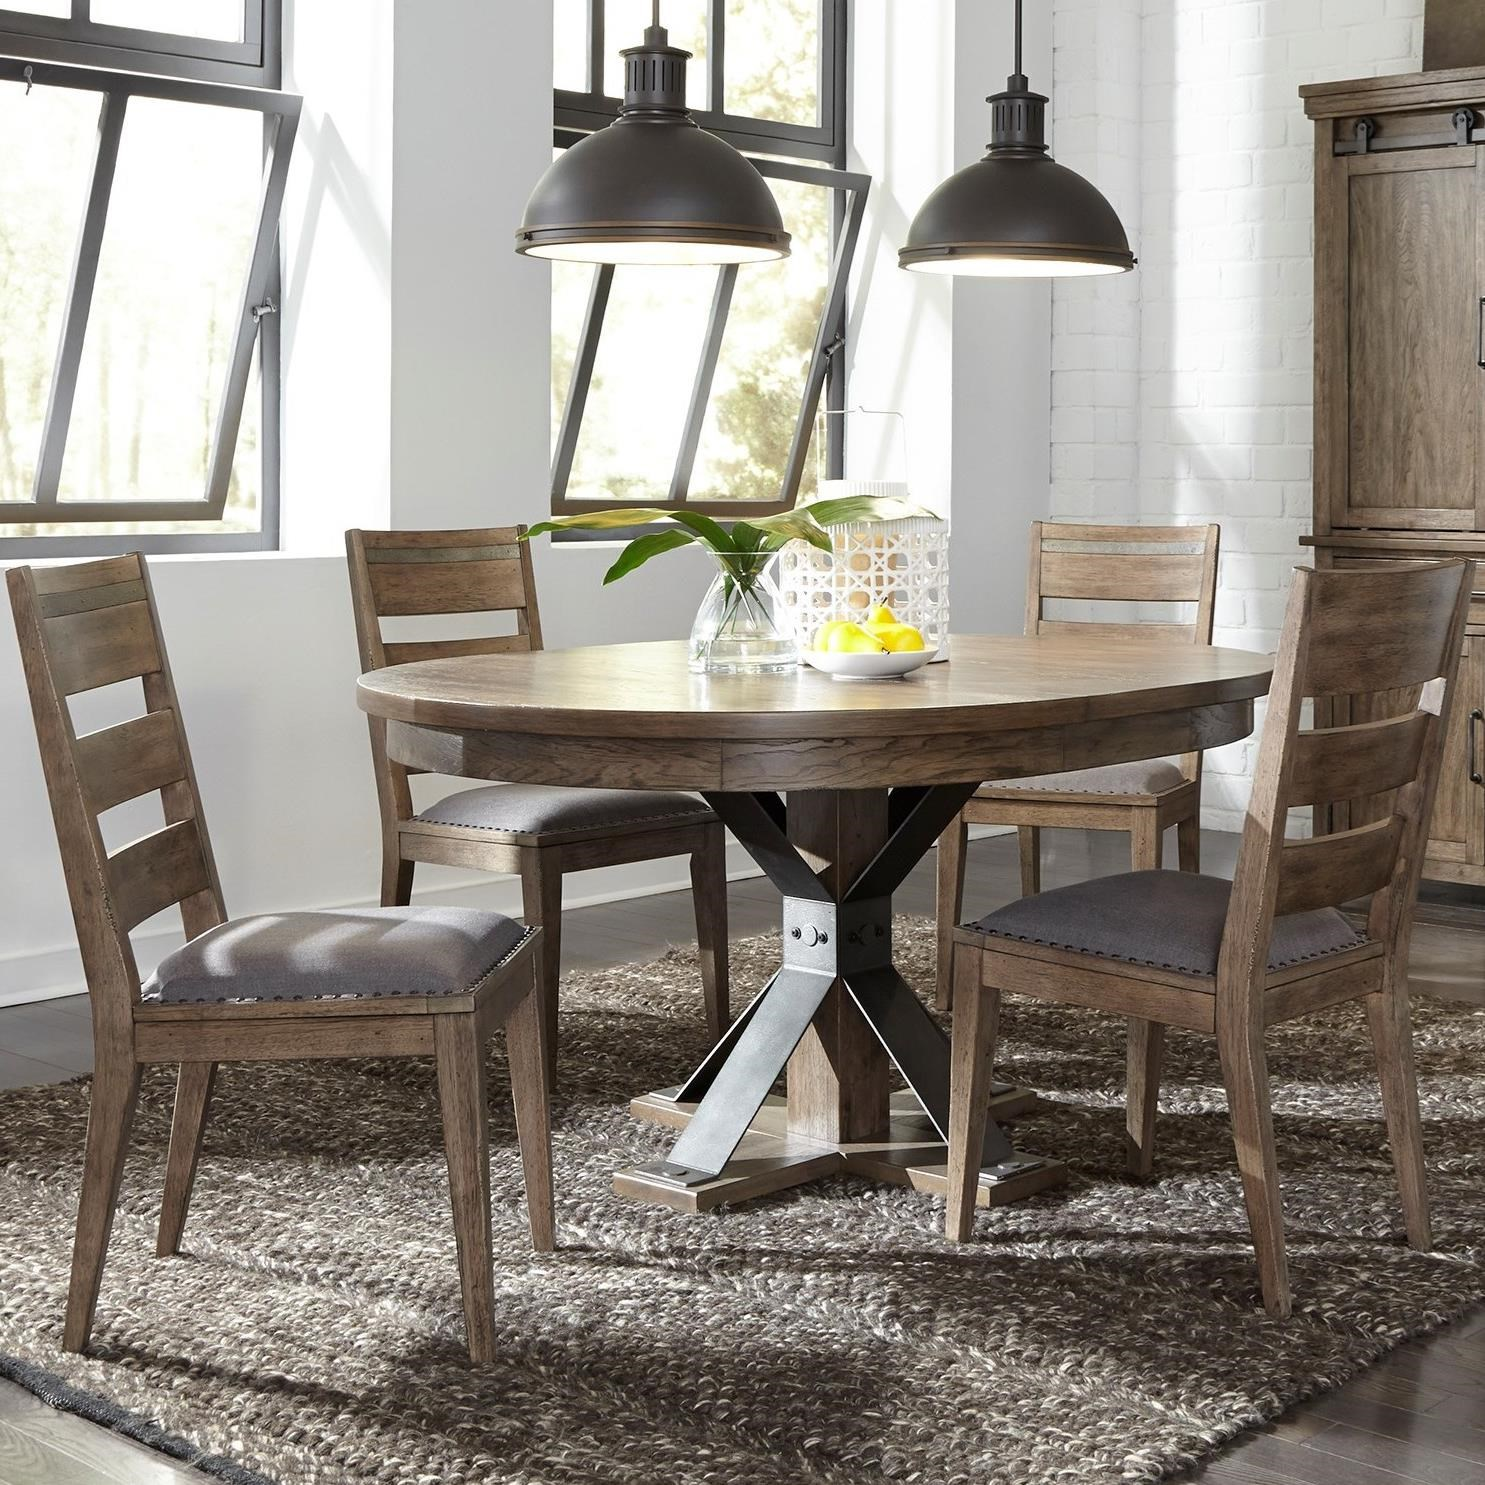 Sonoma Road 5 Piece Table and Chair Set  by Liberty Furniture at Wayside Furniture